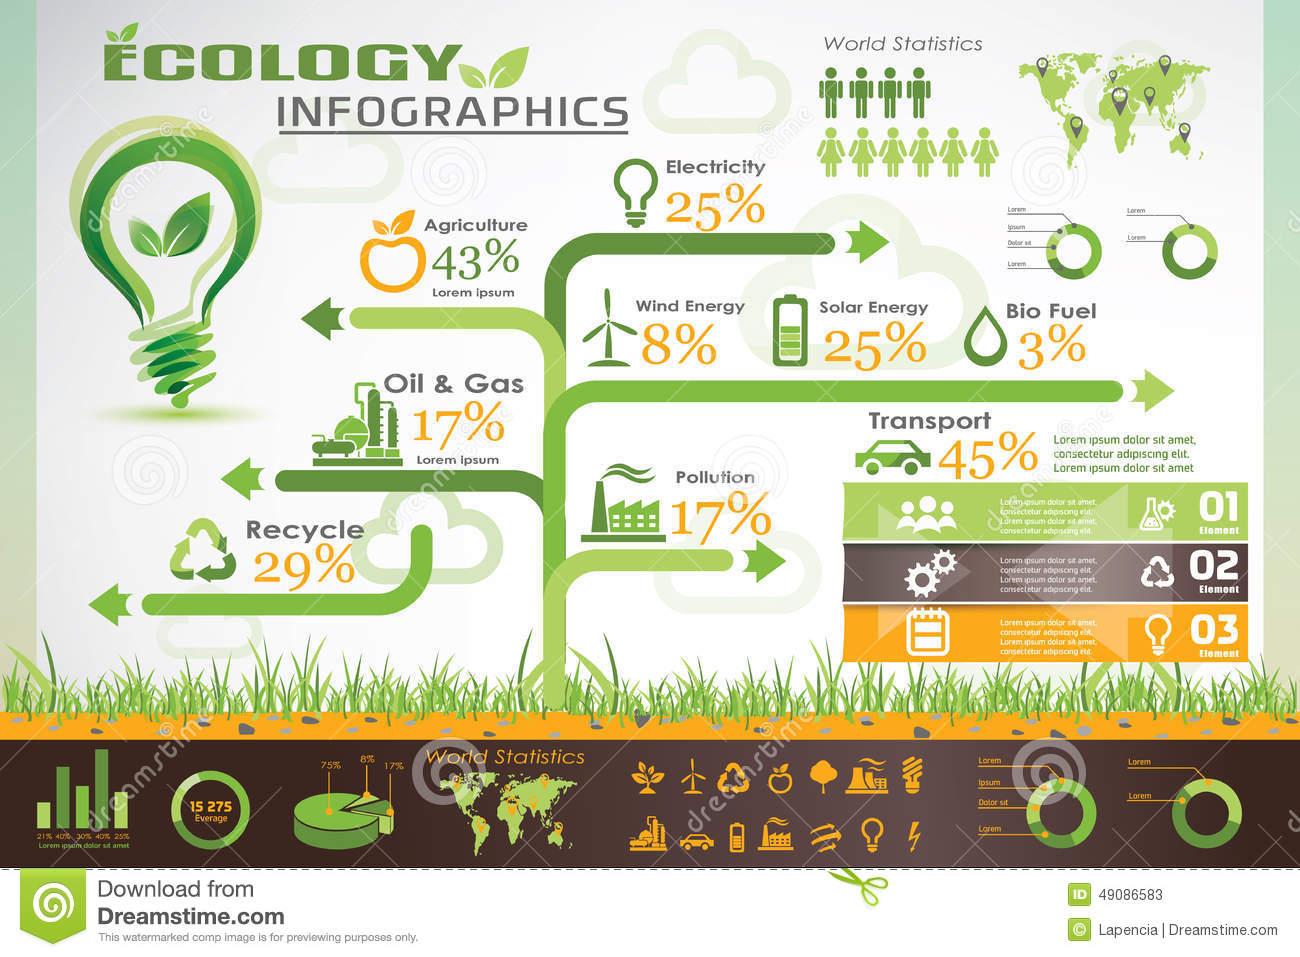 Infografik Wo Kommt Der Plastikmuell Im Meer Her Und Wo Genau Landet Er furthermore Loraxkitchen blogspot besides 30 Cool Infographics likewise Stock Illustration Ecology Infographics Vector Icons Collection Environment Information Template Image49086583 as well Stock Photography Power Graphs Charts Image28016272. on recycling infographic